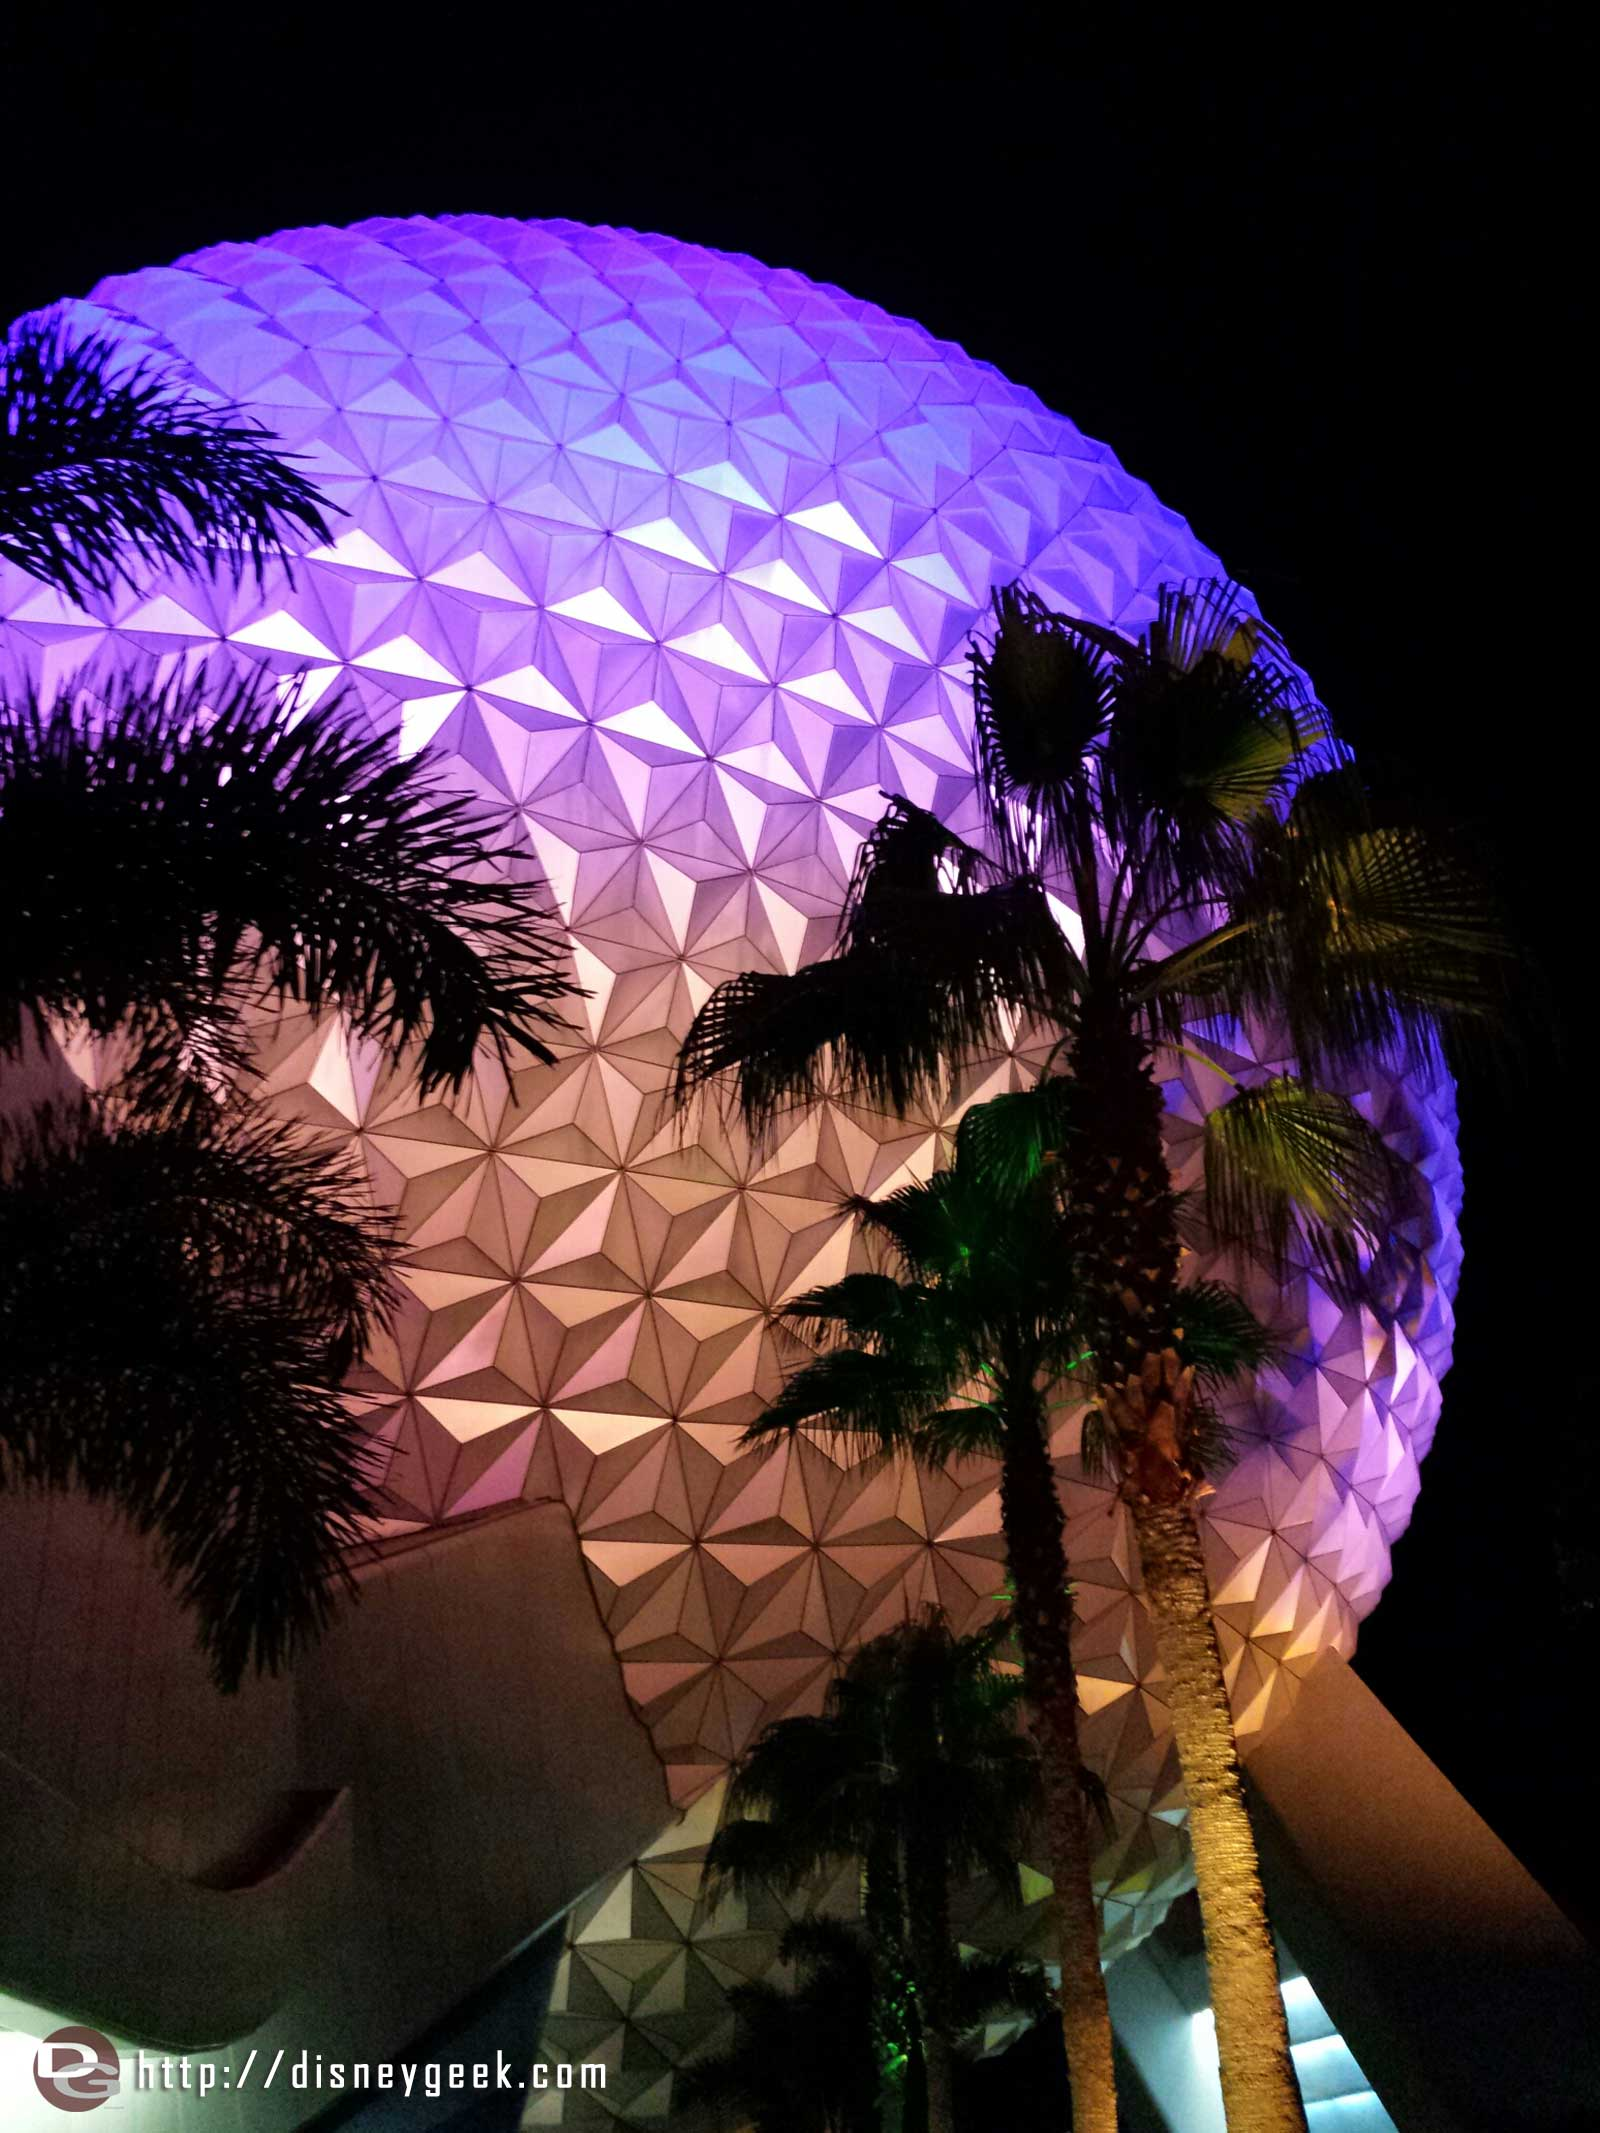 Final stop of the evening, Epcot. Spaceship Earth.